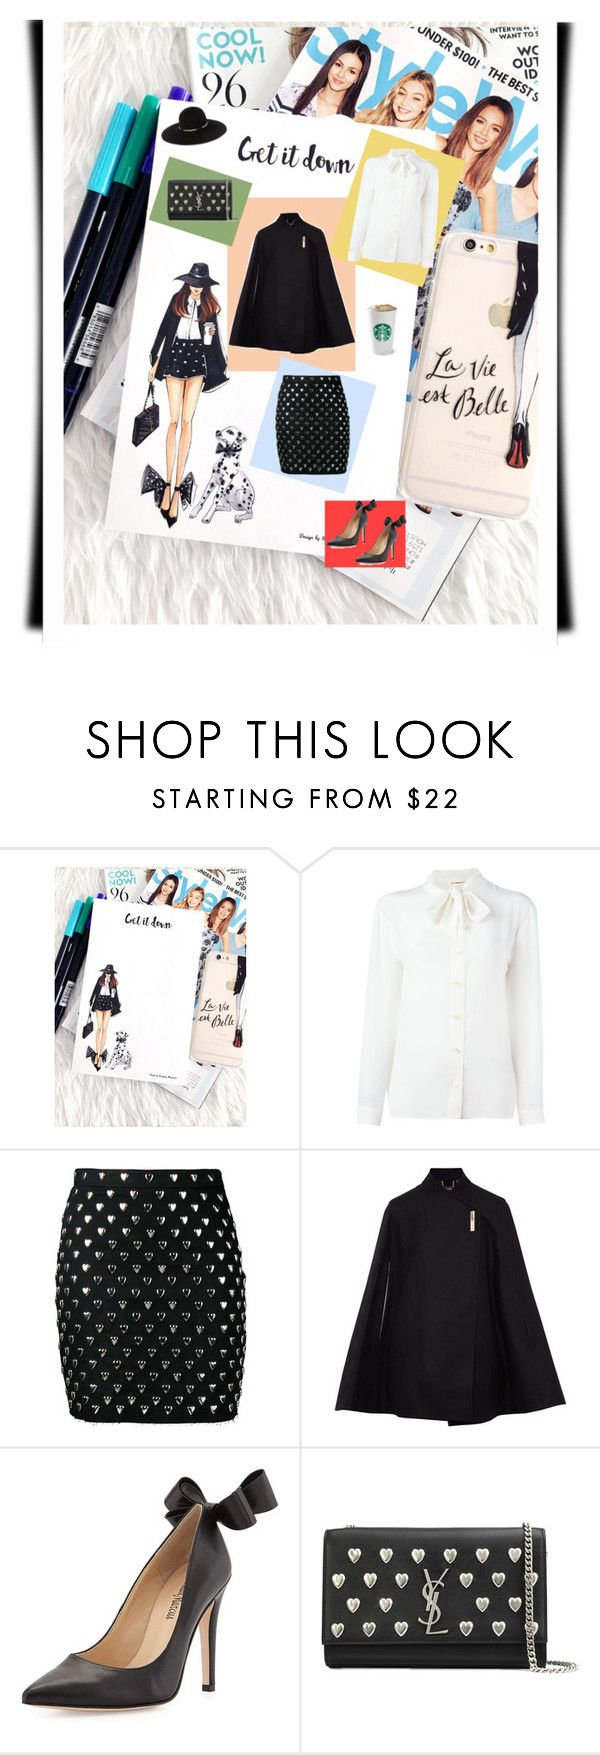 """""""Get it down"""" by anna17682 on Polyvore featuring Yves Saint Laurent, Ted Baker, Neiman Marcus e Eugenia Kim"""